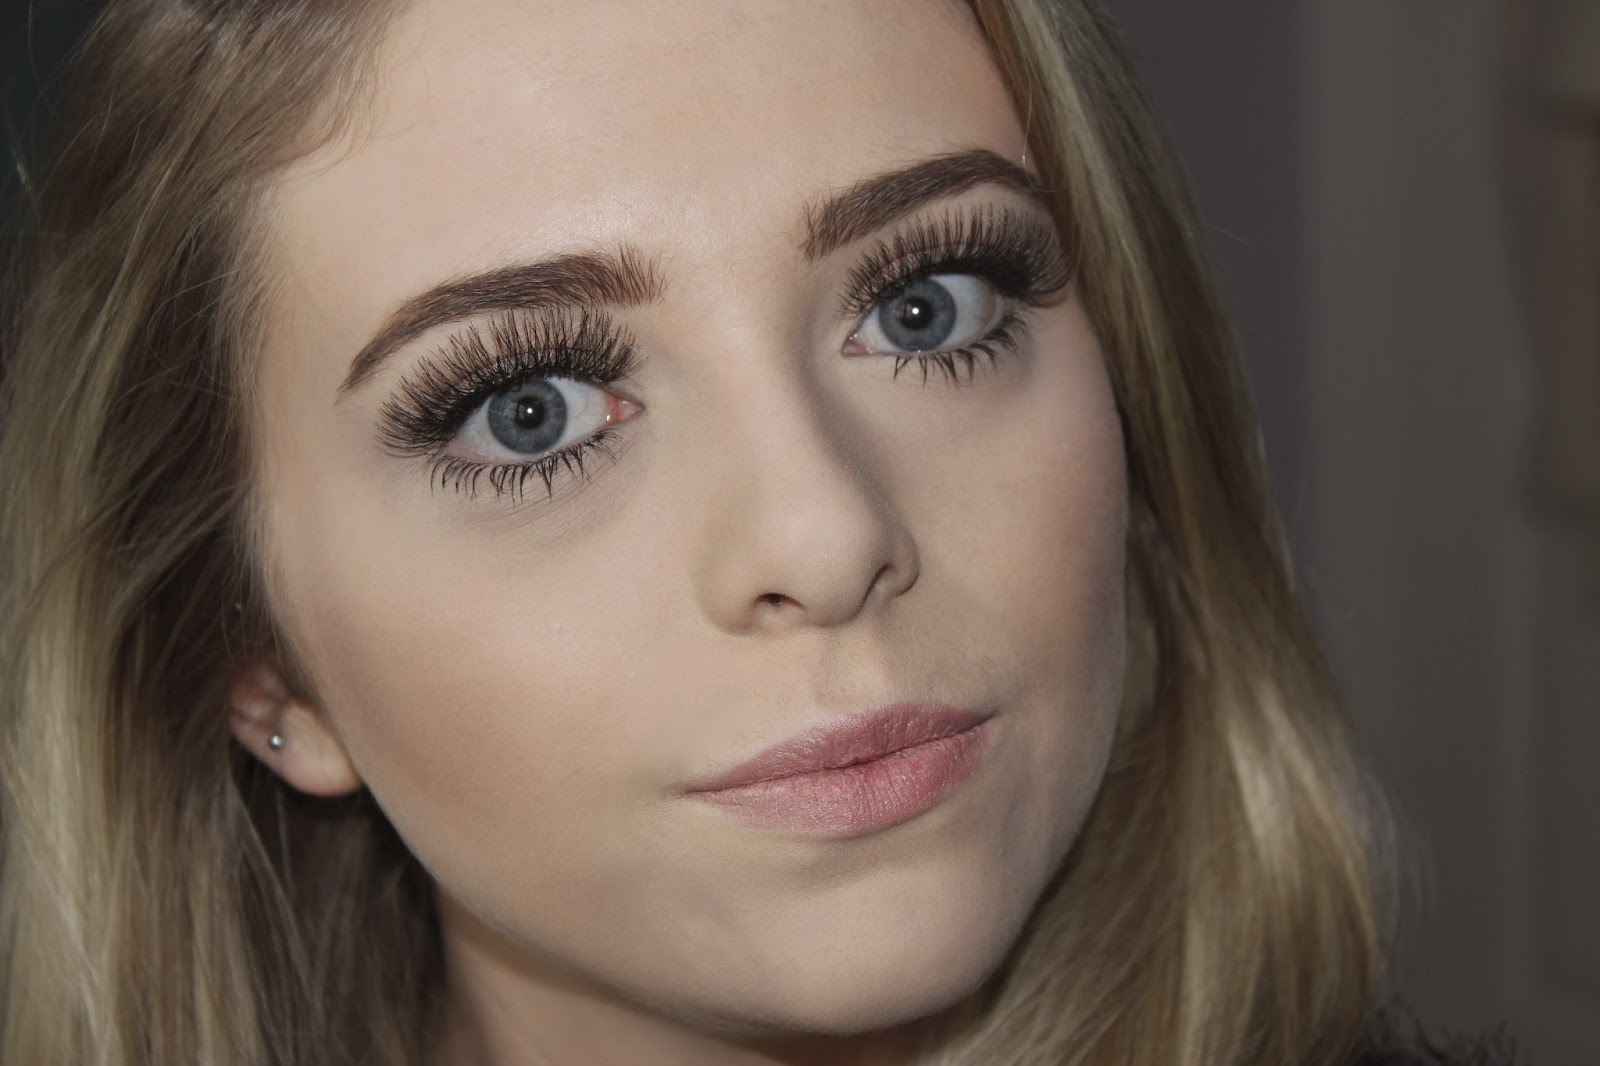 how to apply false eyelashes so they look natural